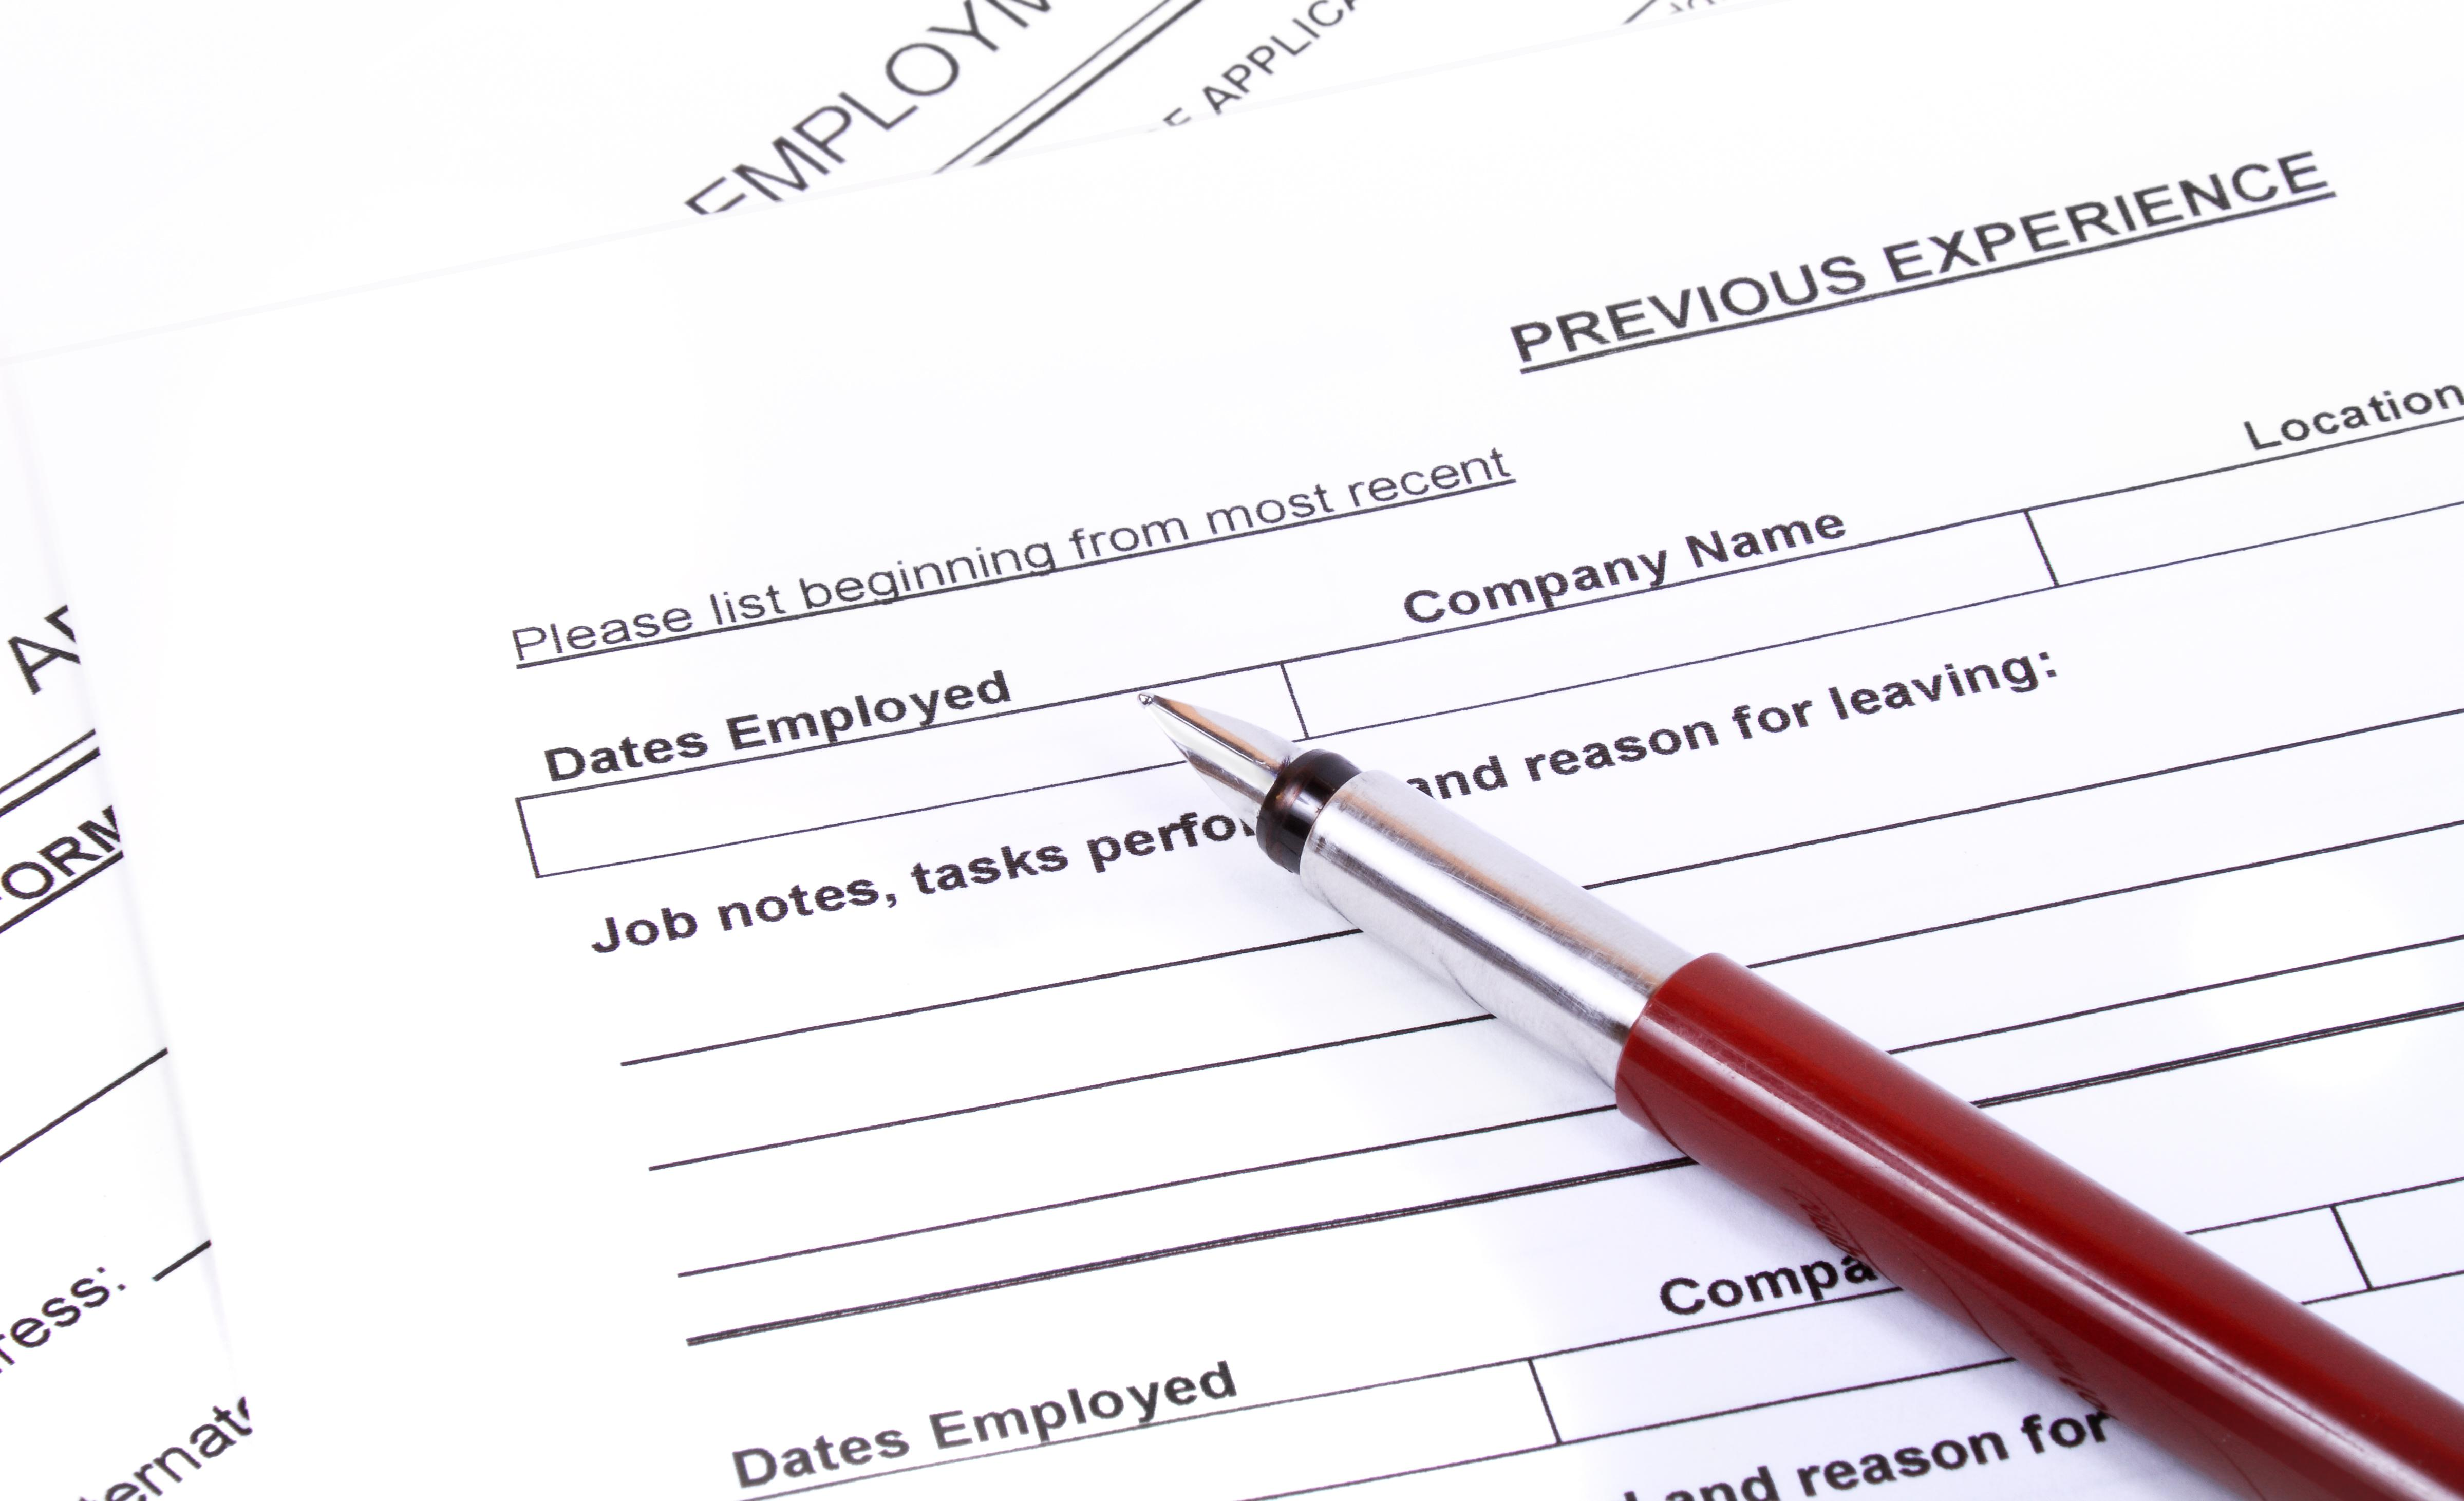 How to to Find your Employment History?